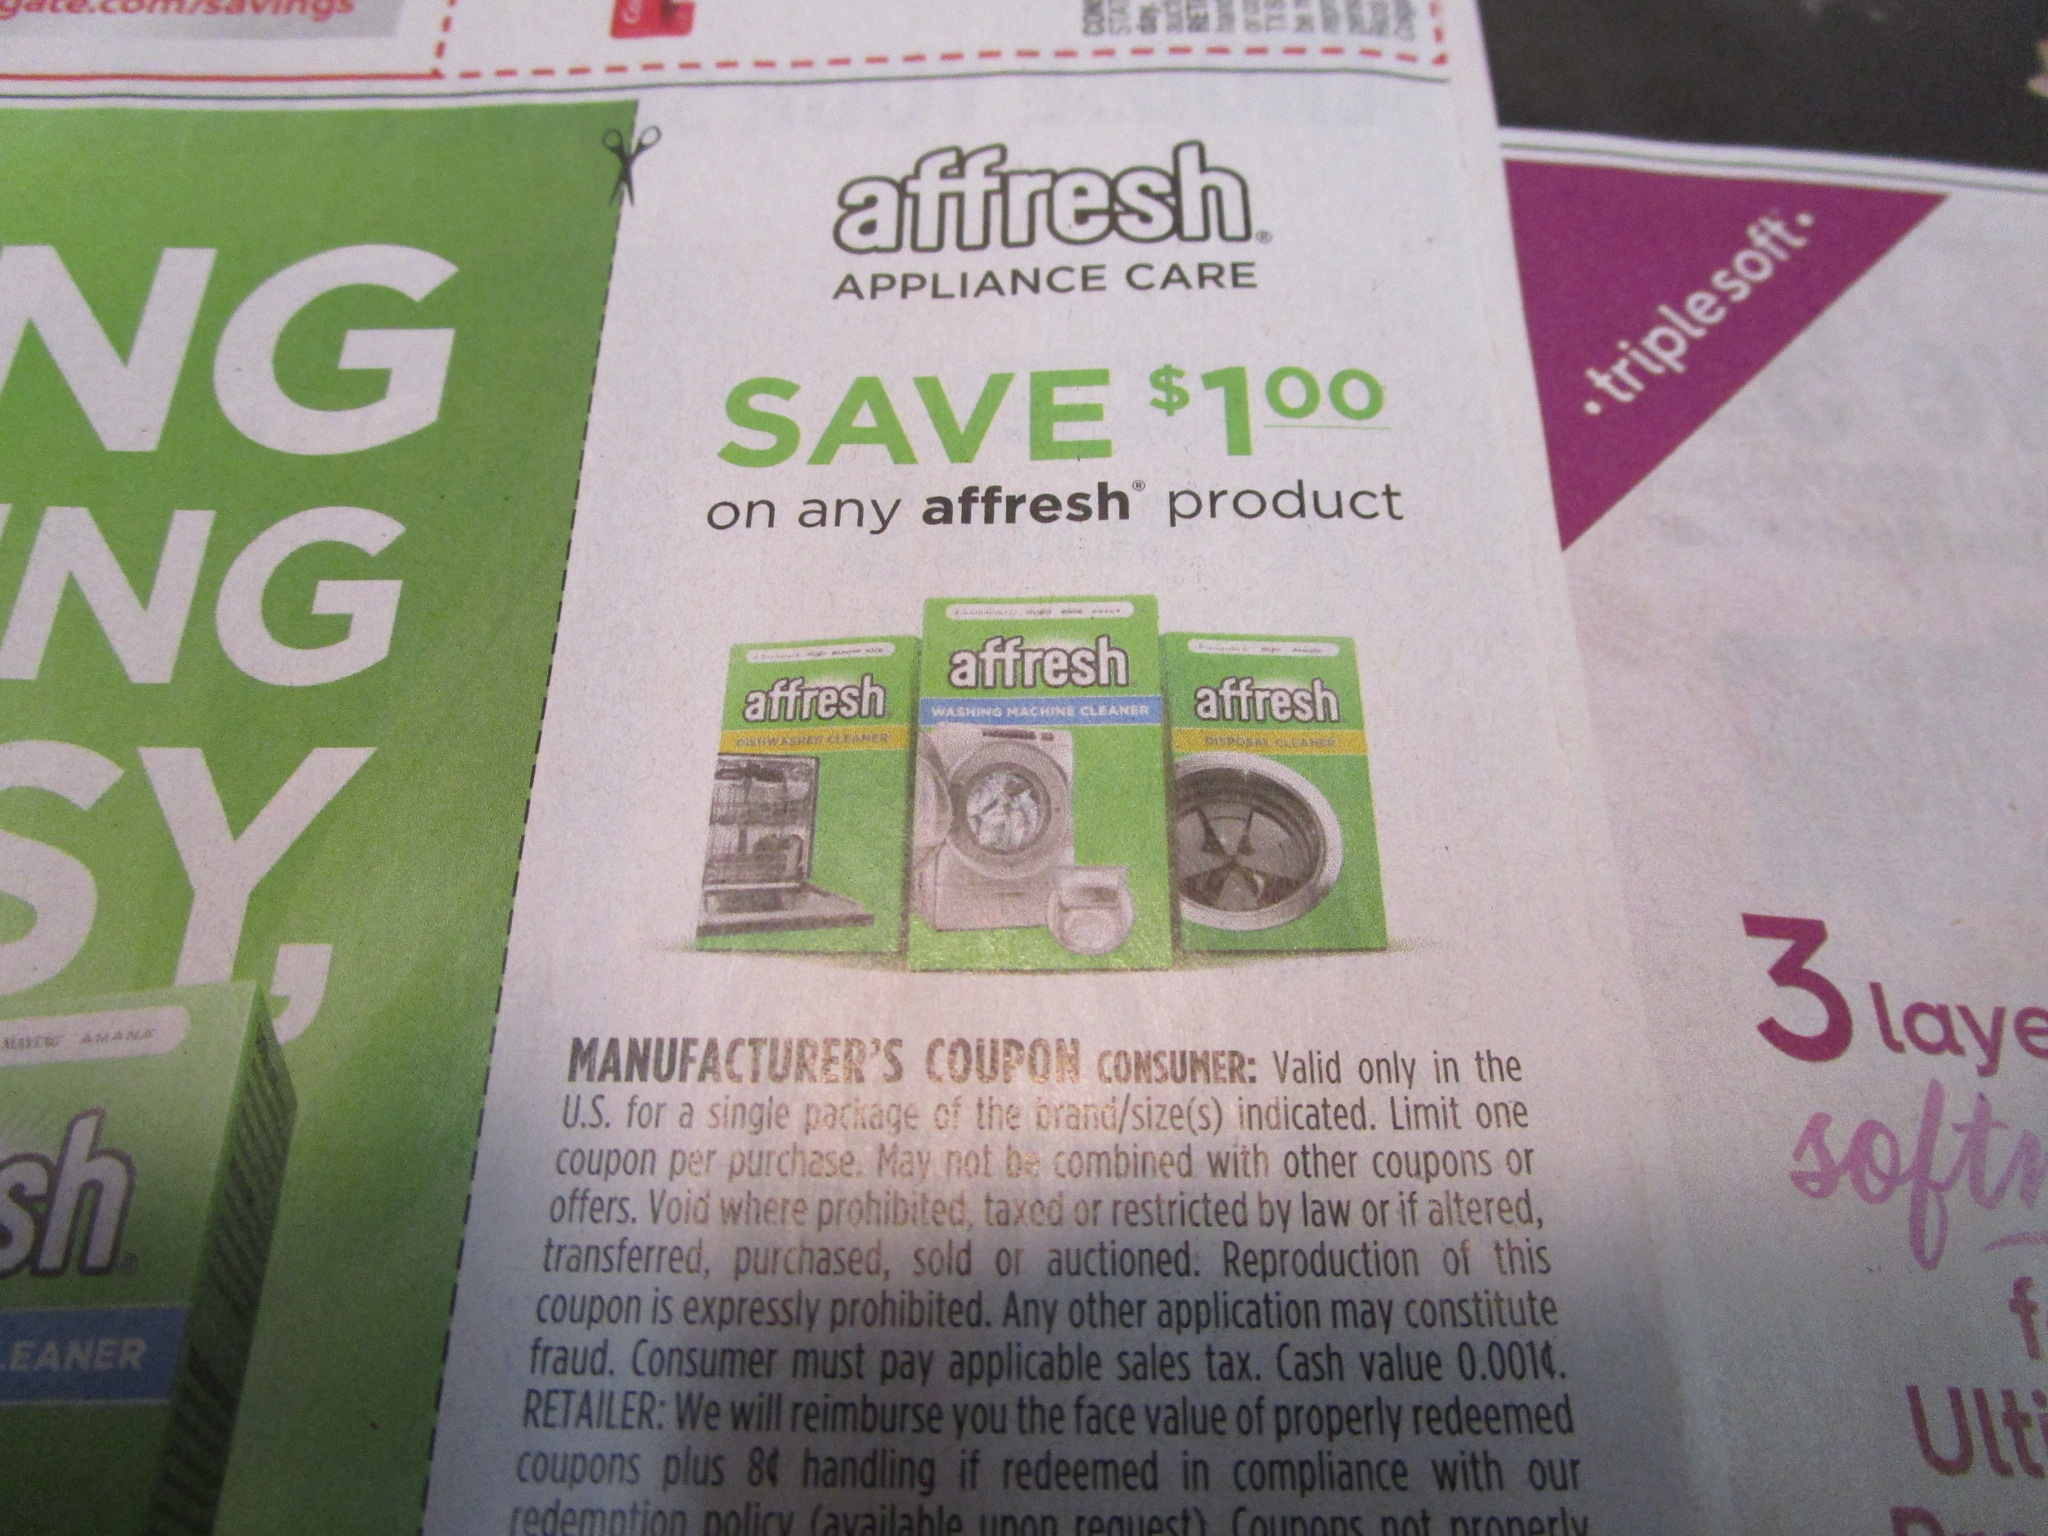 15 Coupons $1/1 Affresh Appliance Care 5/23/2021